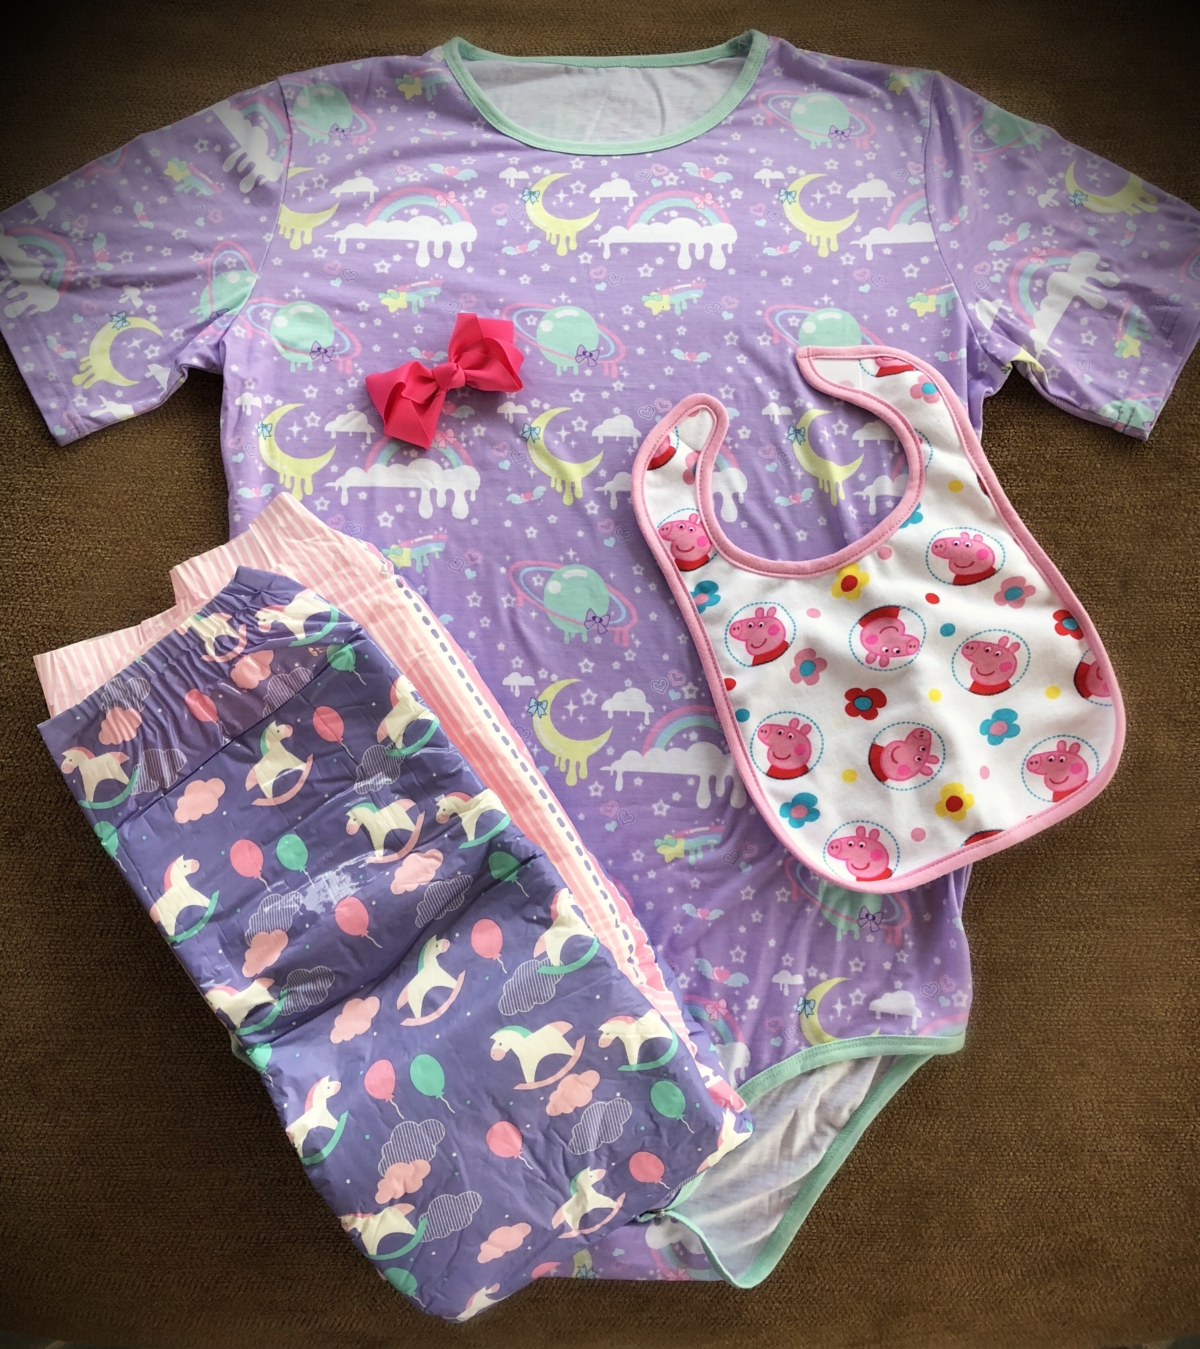 ABDL onsie, adult, baby, diaper, lover, infantilism, adult diaper, adult onsie, role play, chicago dominatrix